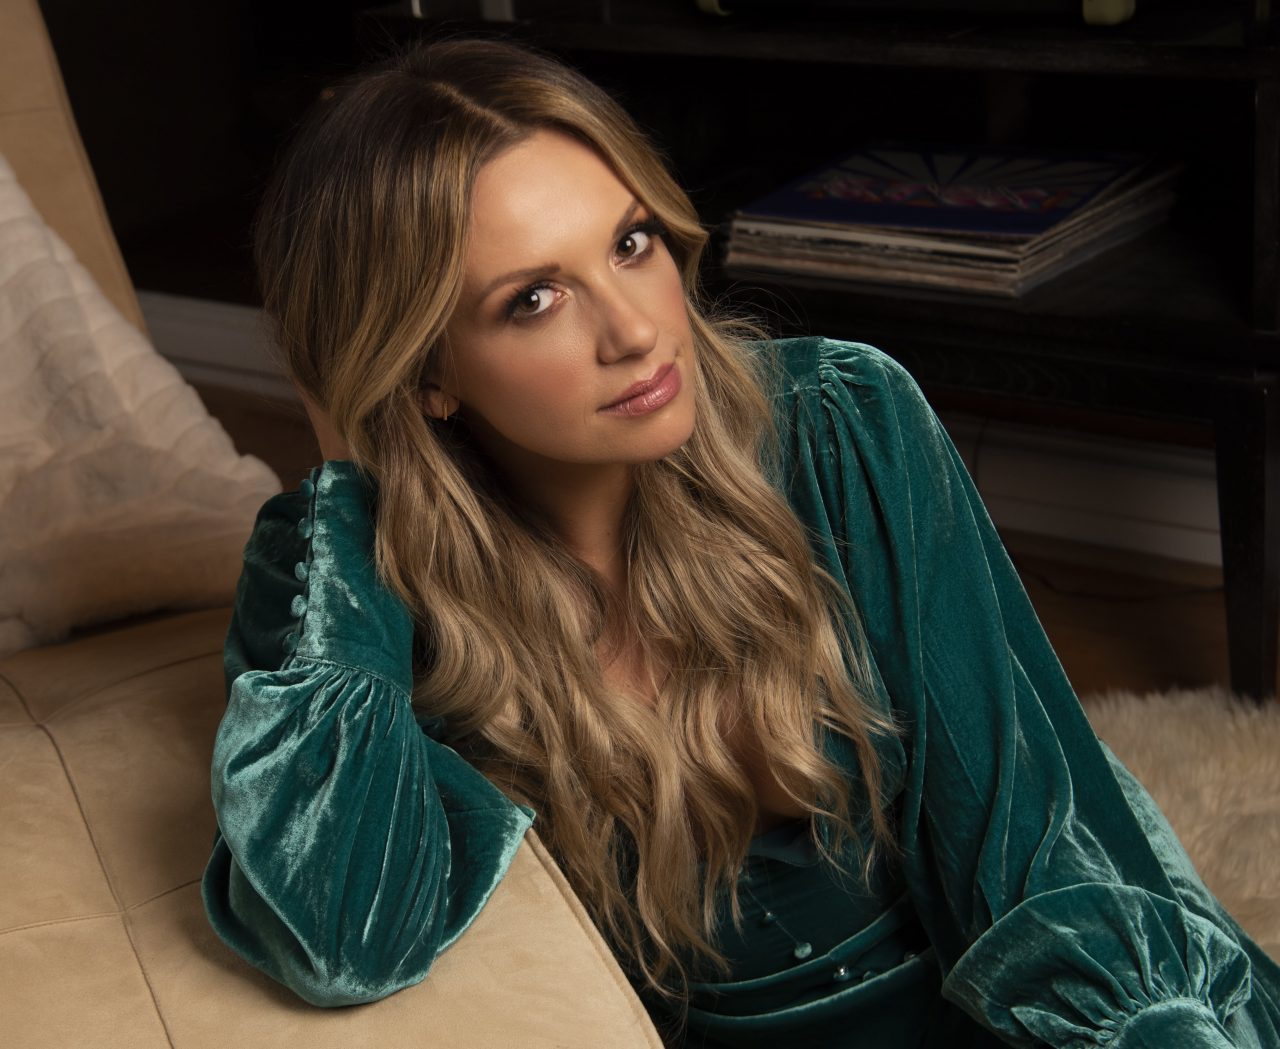 Carly Pearce Gets Closer to Fans With 'Closer To You' Video